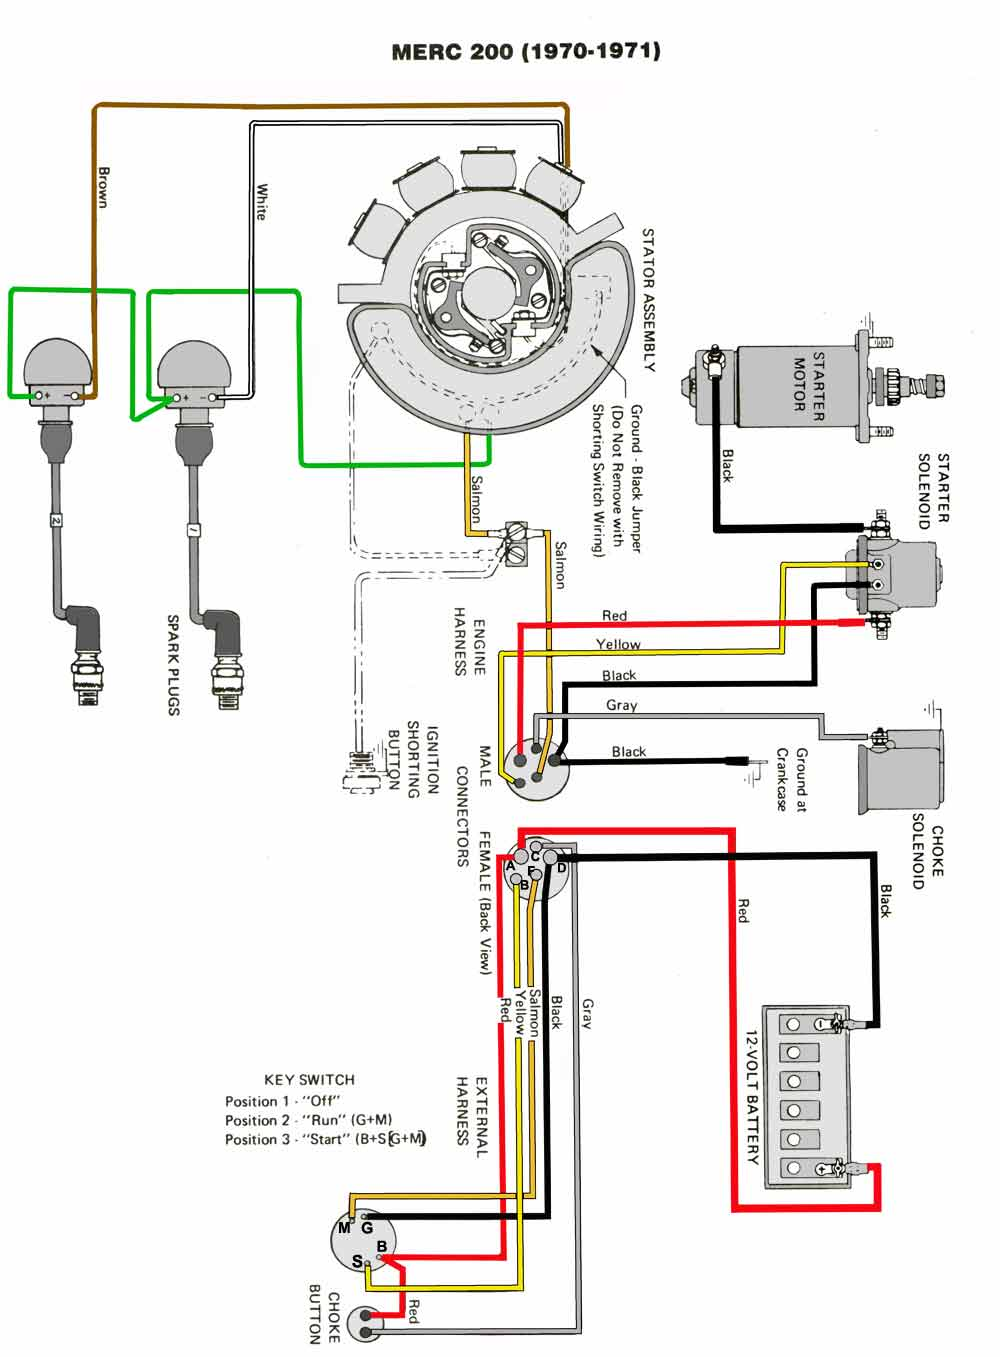 1997 Mercury Outboard Wiring Diagram Guide And Troubleshooting Of Johnson Ignition 75 Hp Todays Rh 18 16 12 1813weddingbarn Com Boat Switch Force